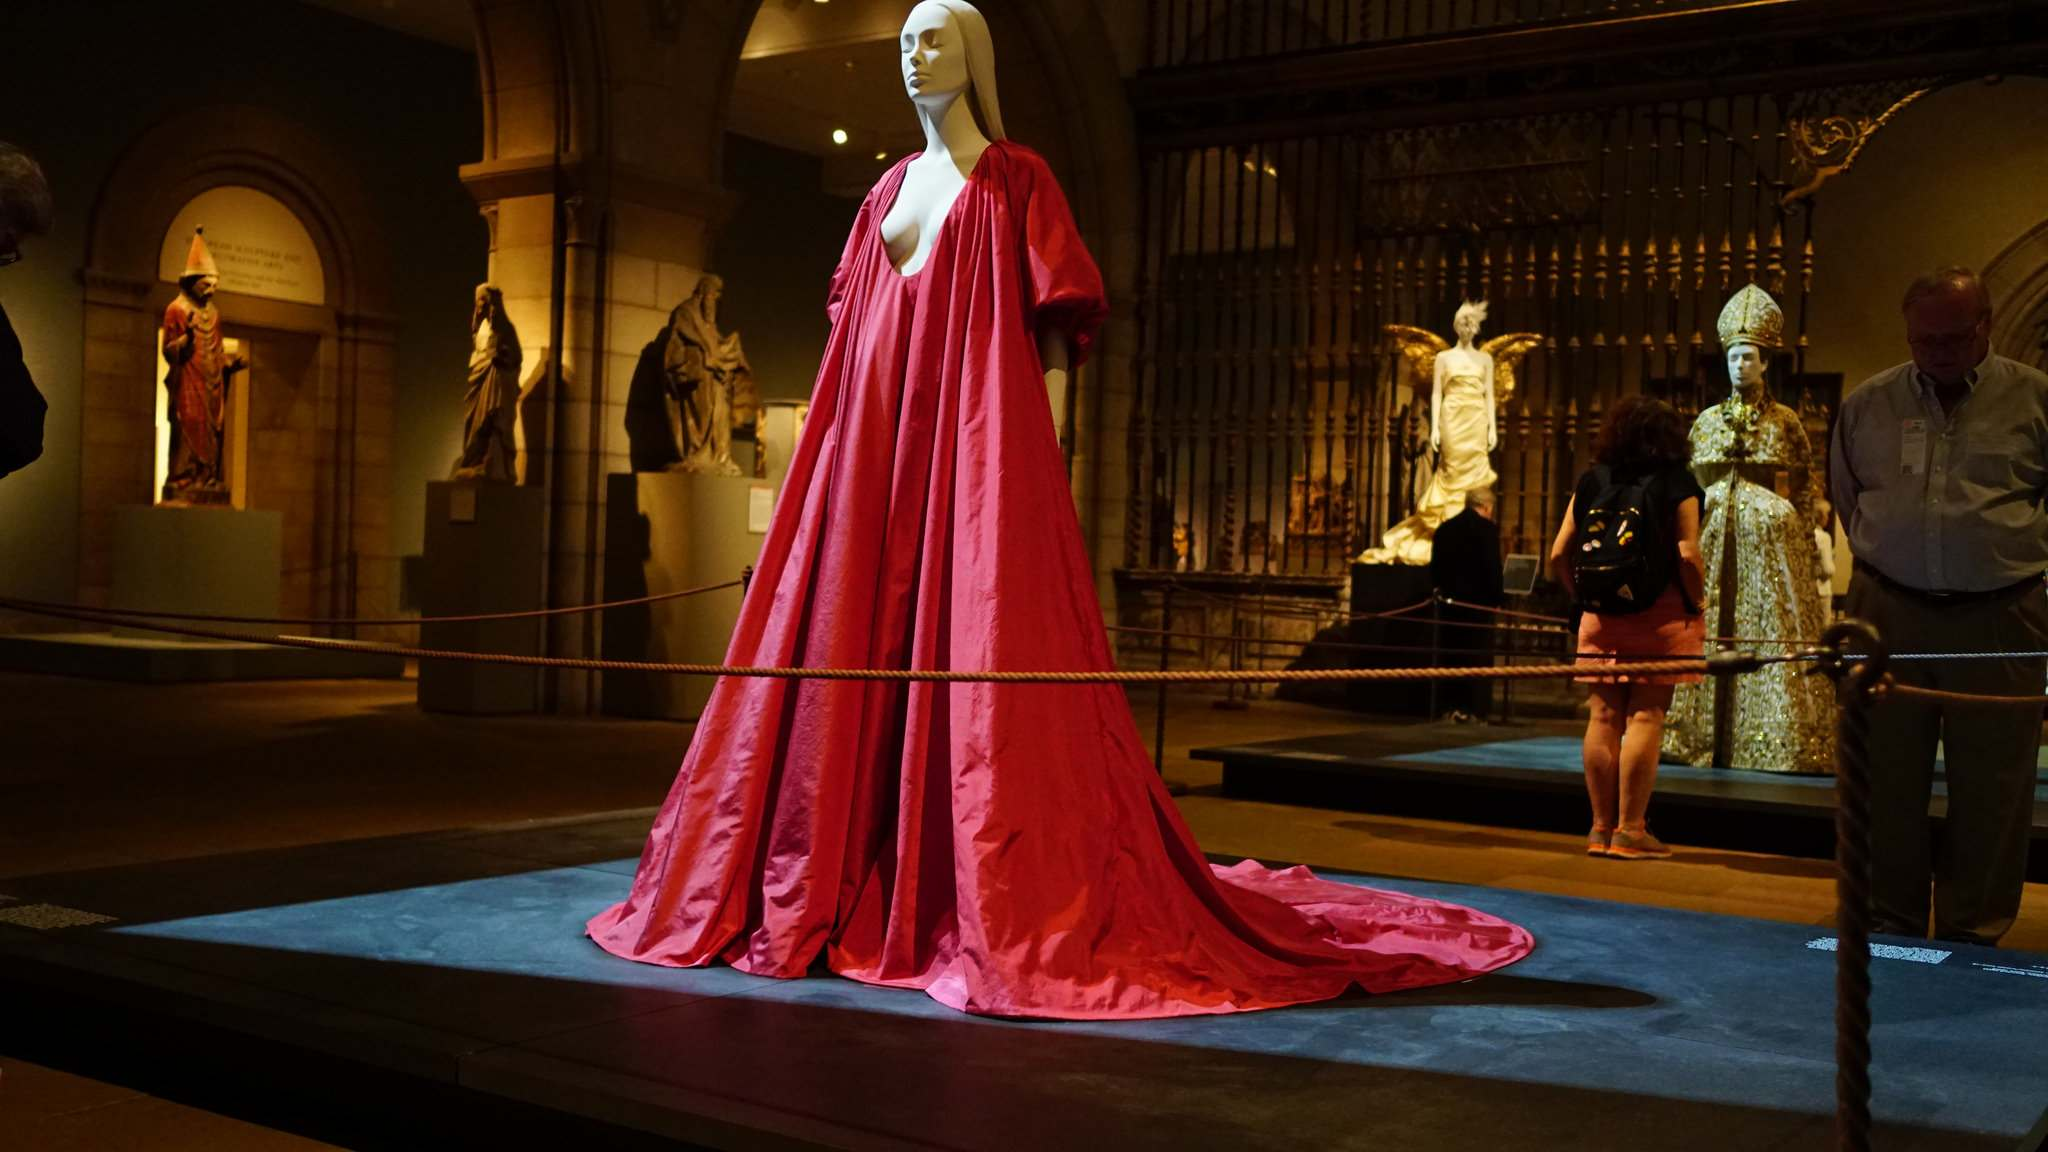 heavenly bodies6 Heavenly Bodies: Fashion and the Catholic Imagination in MET